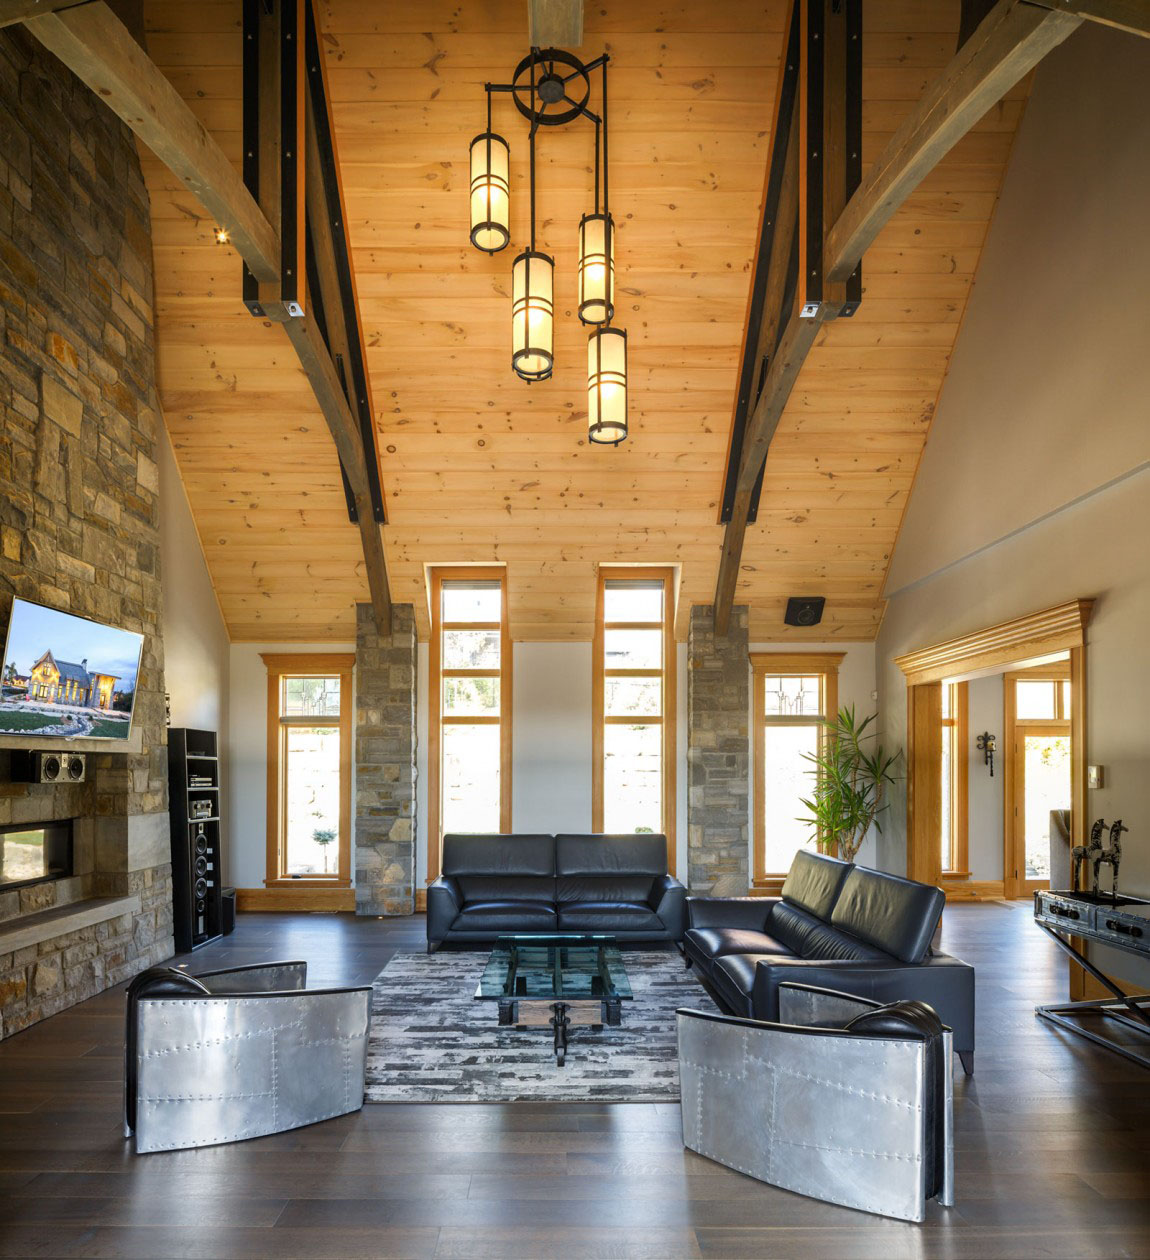 Rustic Contemporary Mountain Theme House